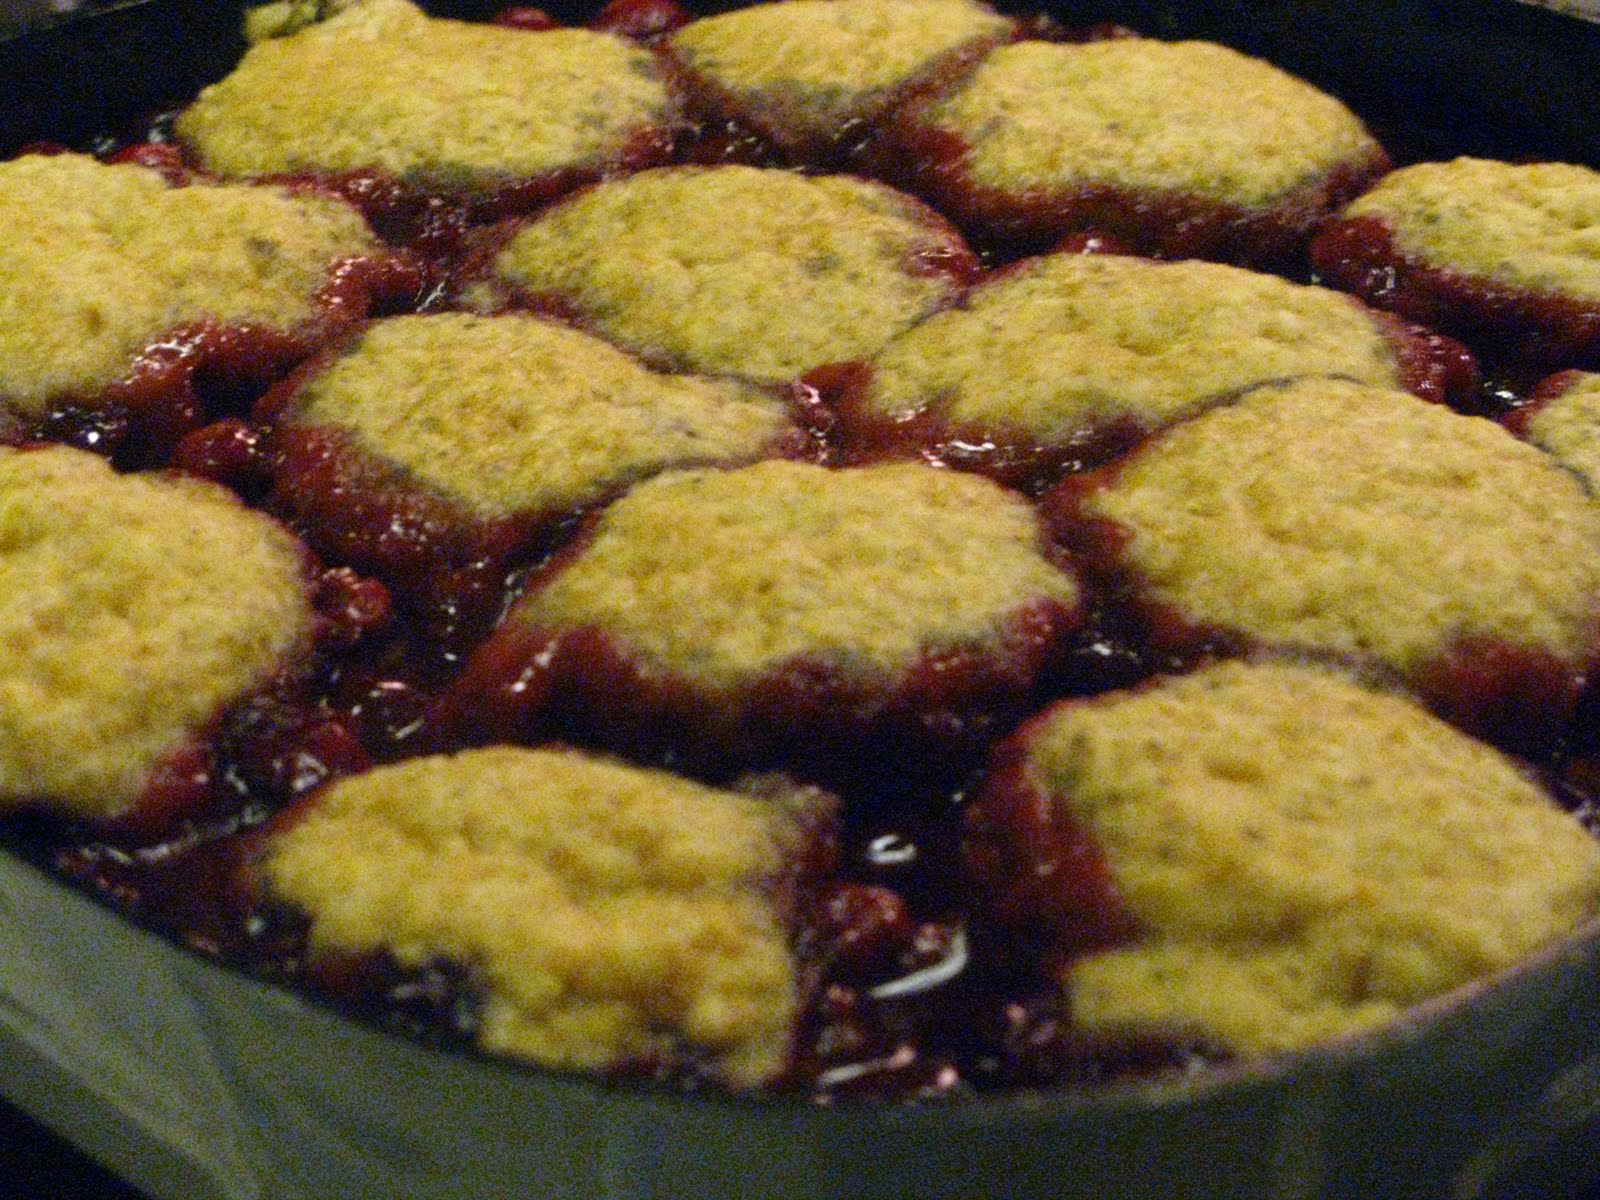 ... raspberries and make this old-fashioned Cranberry-Raspberry Slump